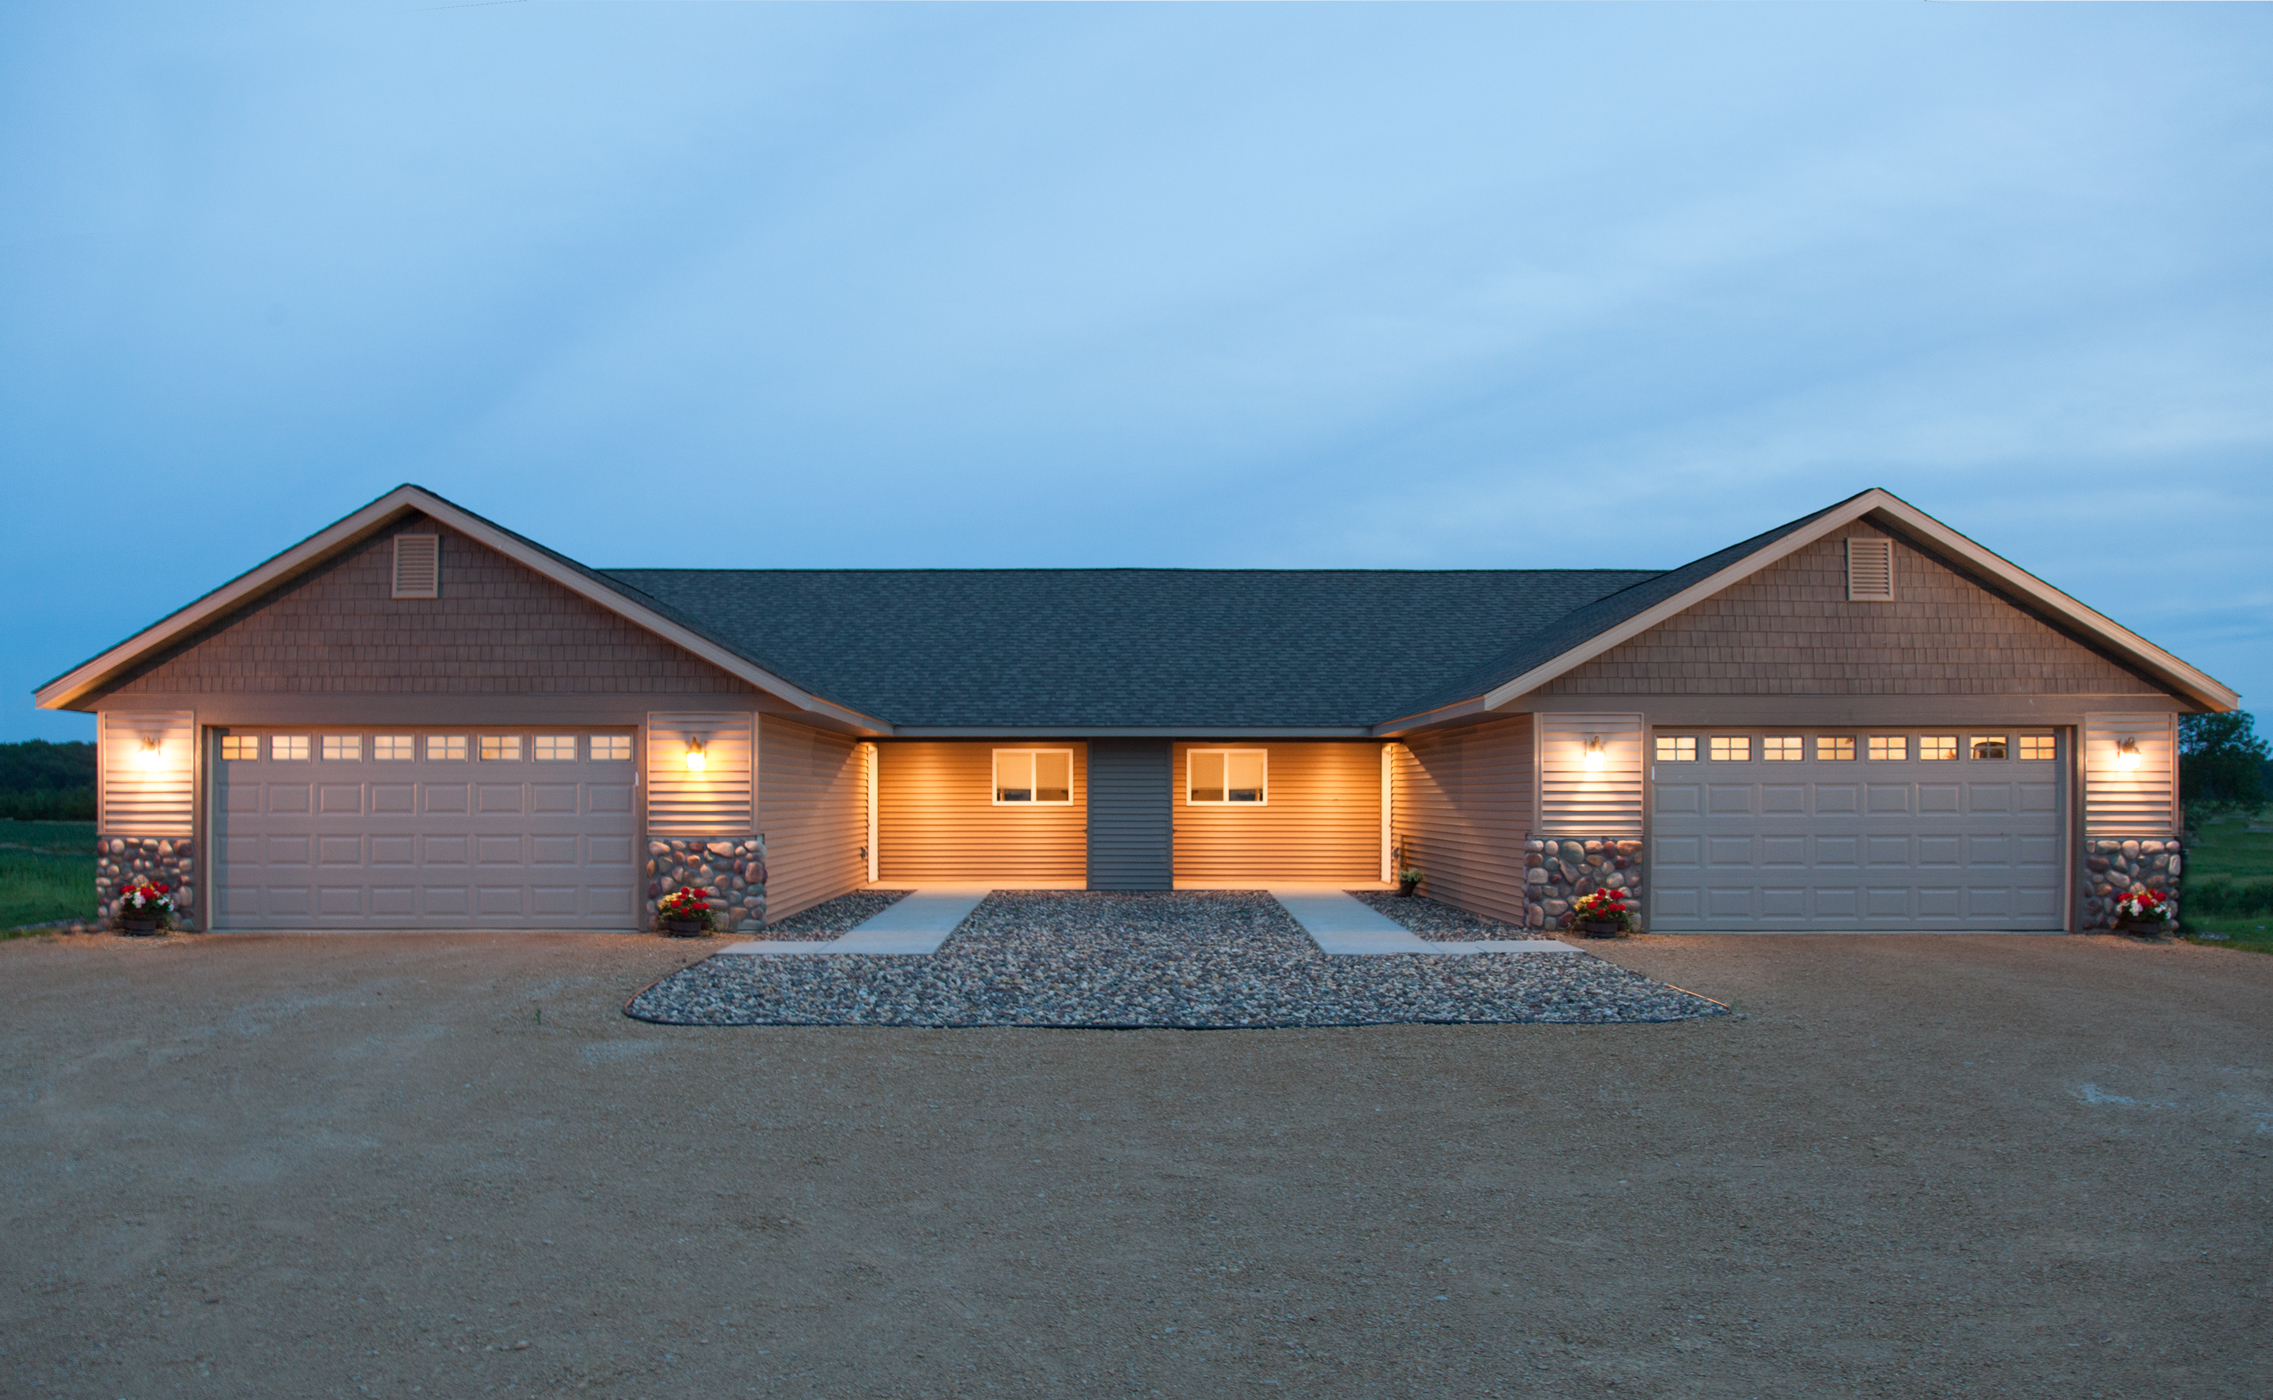 910 – 922 67th Ave Roberts WI